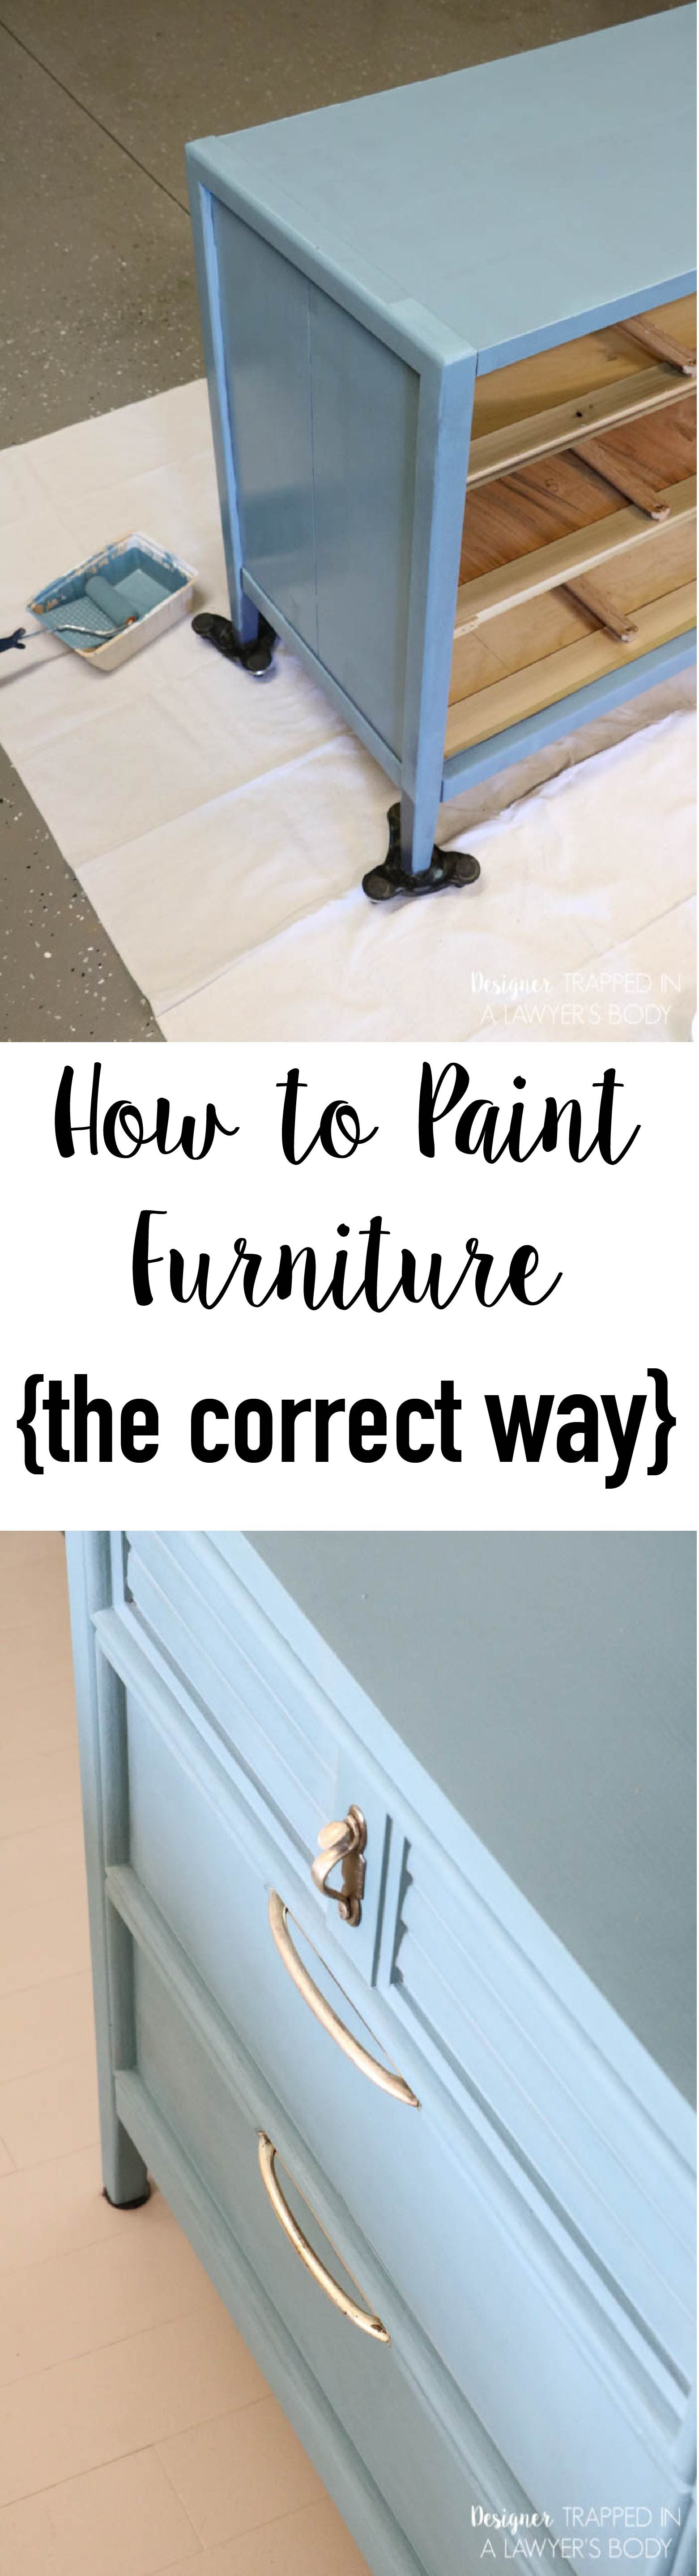 how to paint a dresser the correct way furniture latex and finally a tutorial to show you how to paint a dresser the correct way the best products for the job these products and technique your painted